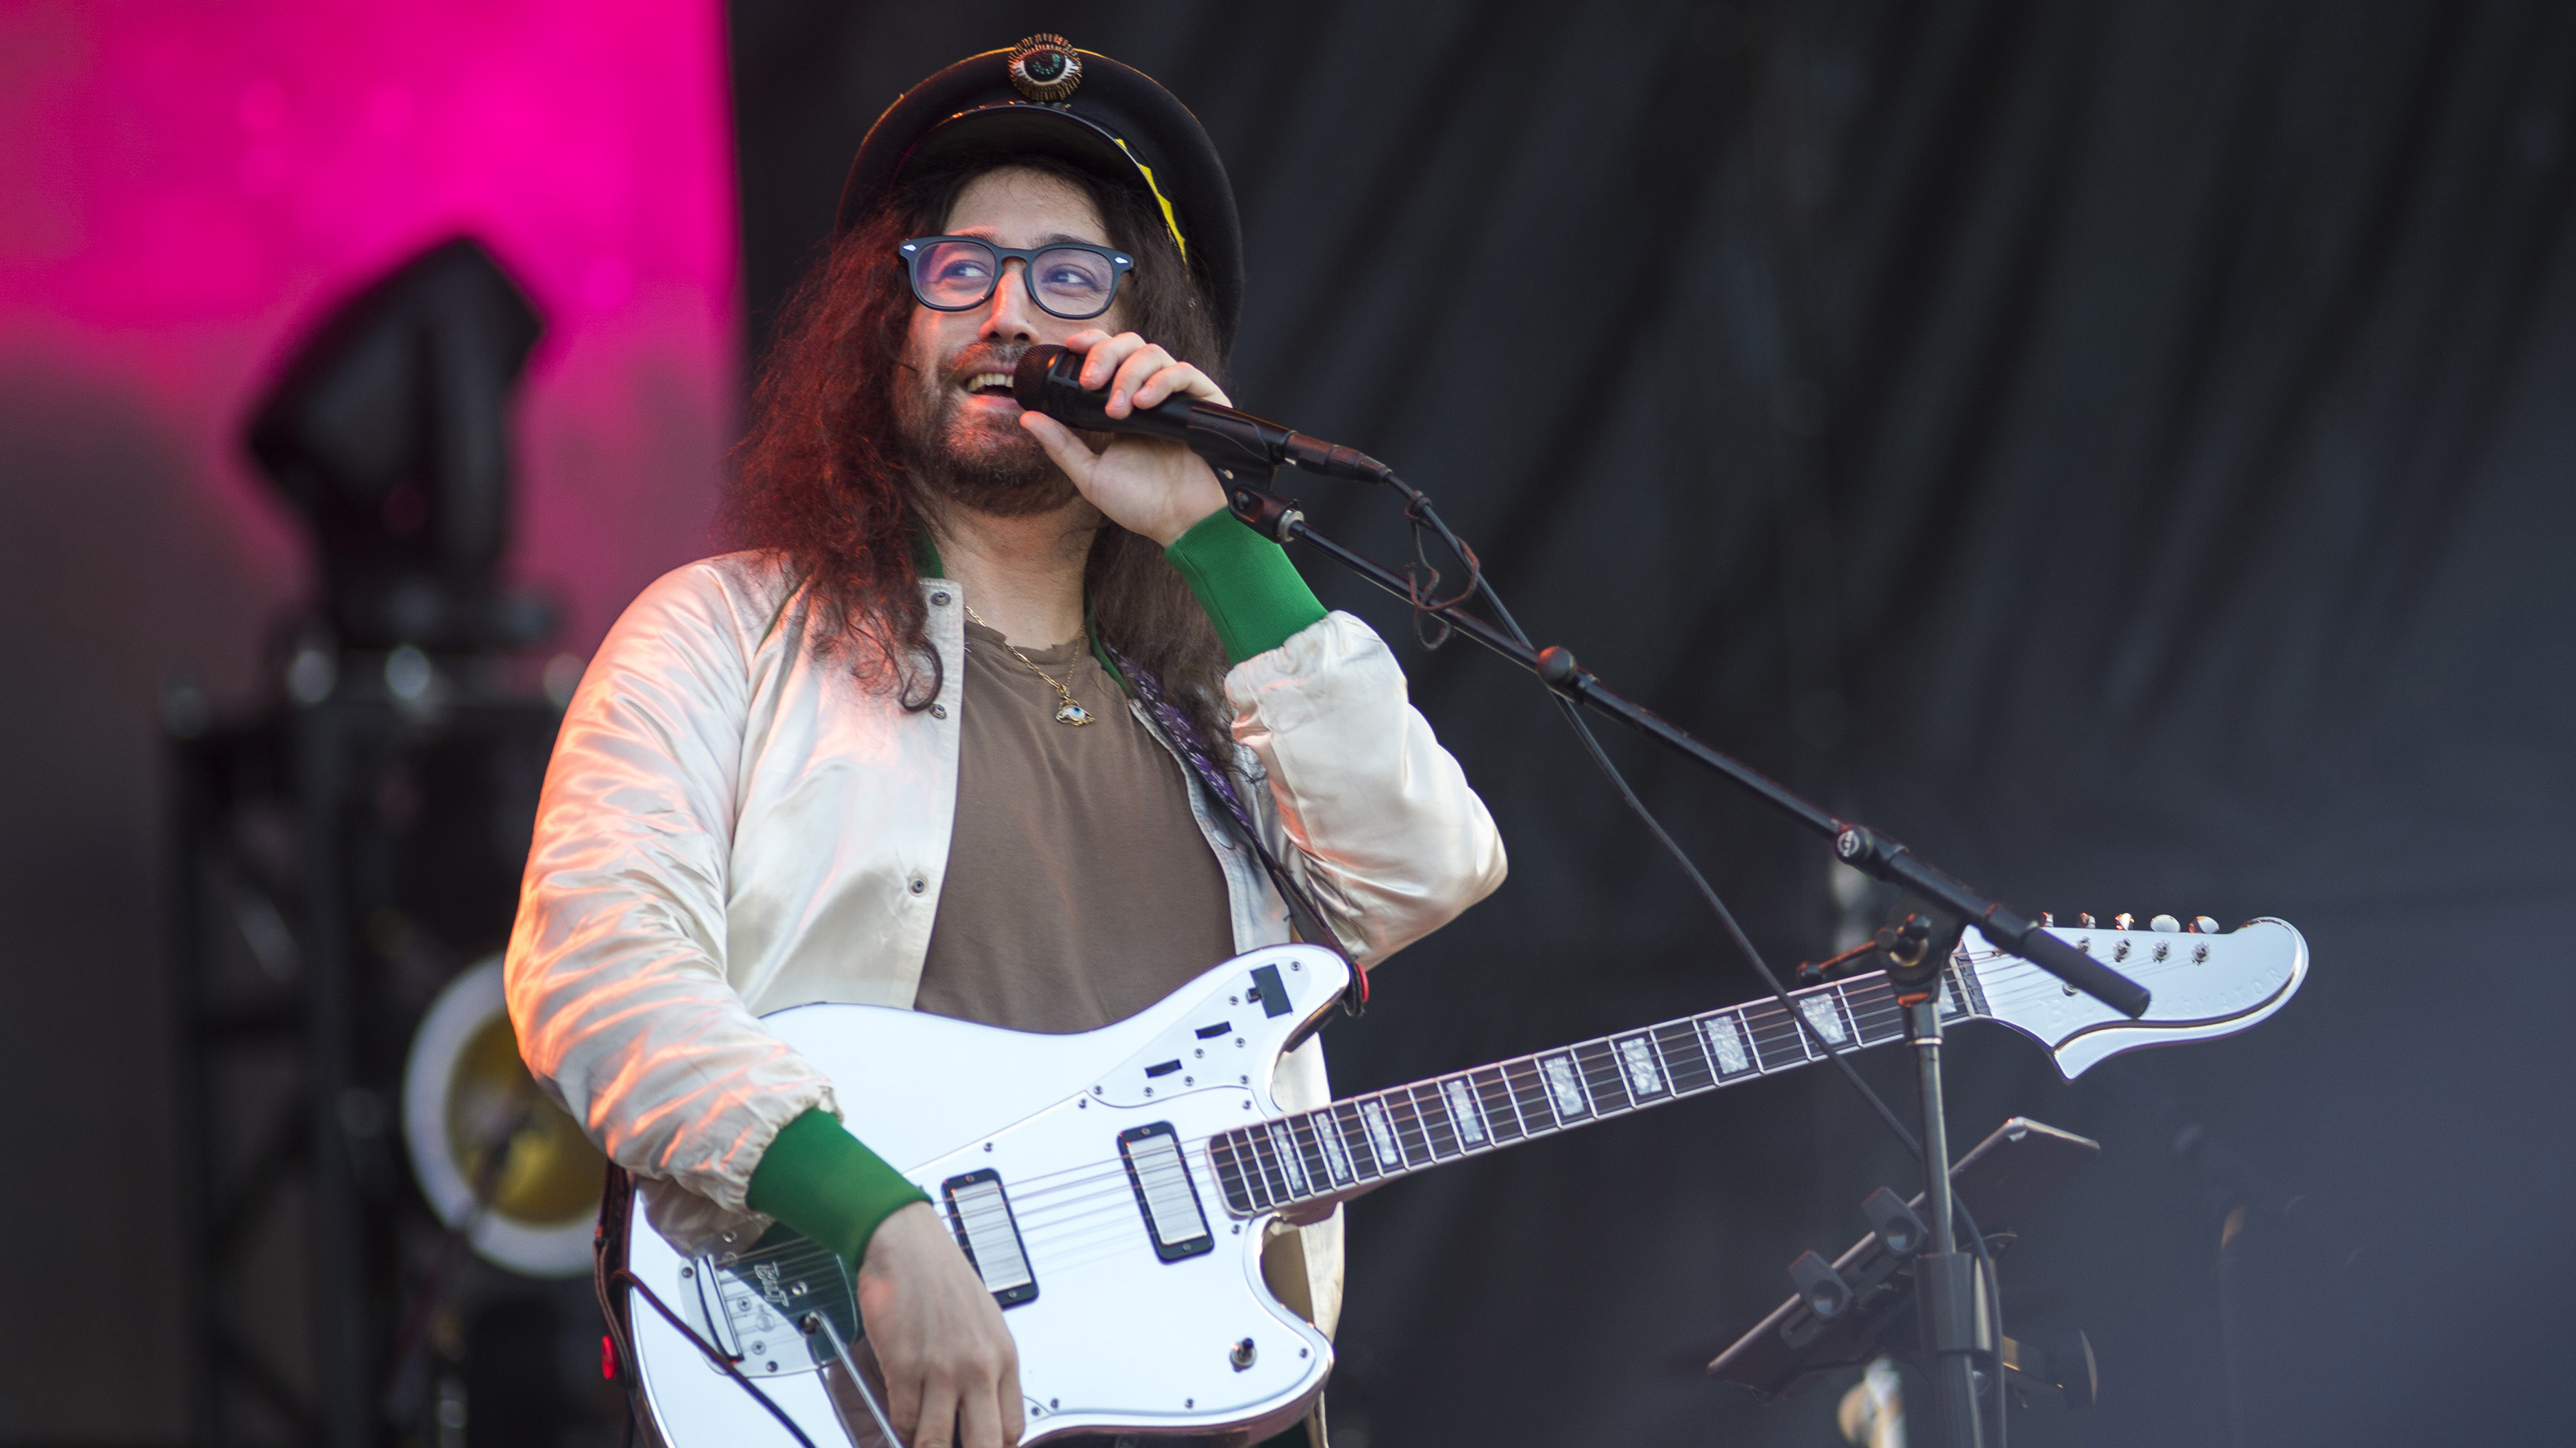 Sean Ono Lennon says 'political correctness' might be 'doing more harm than good'